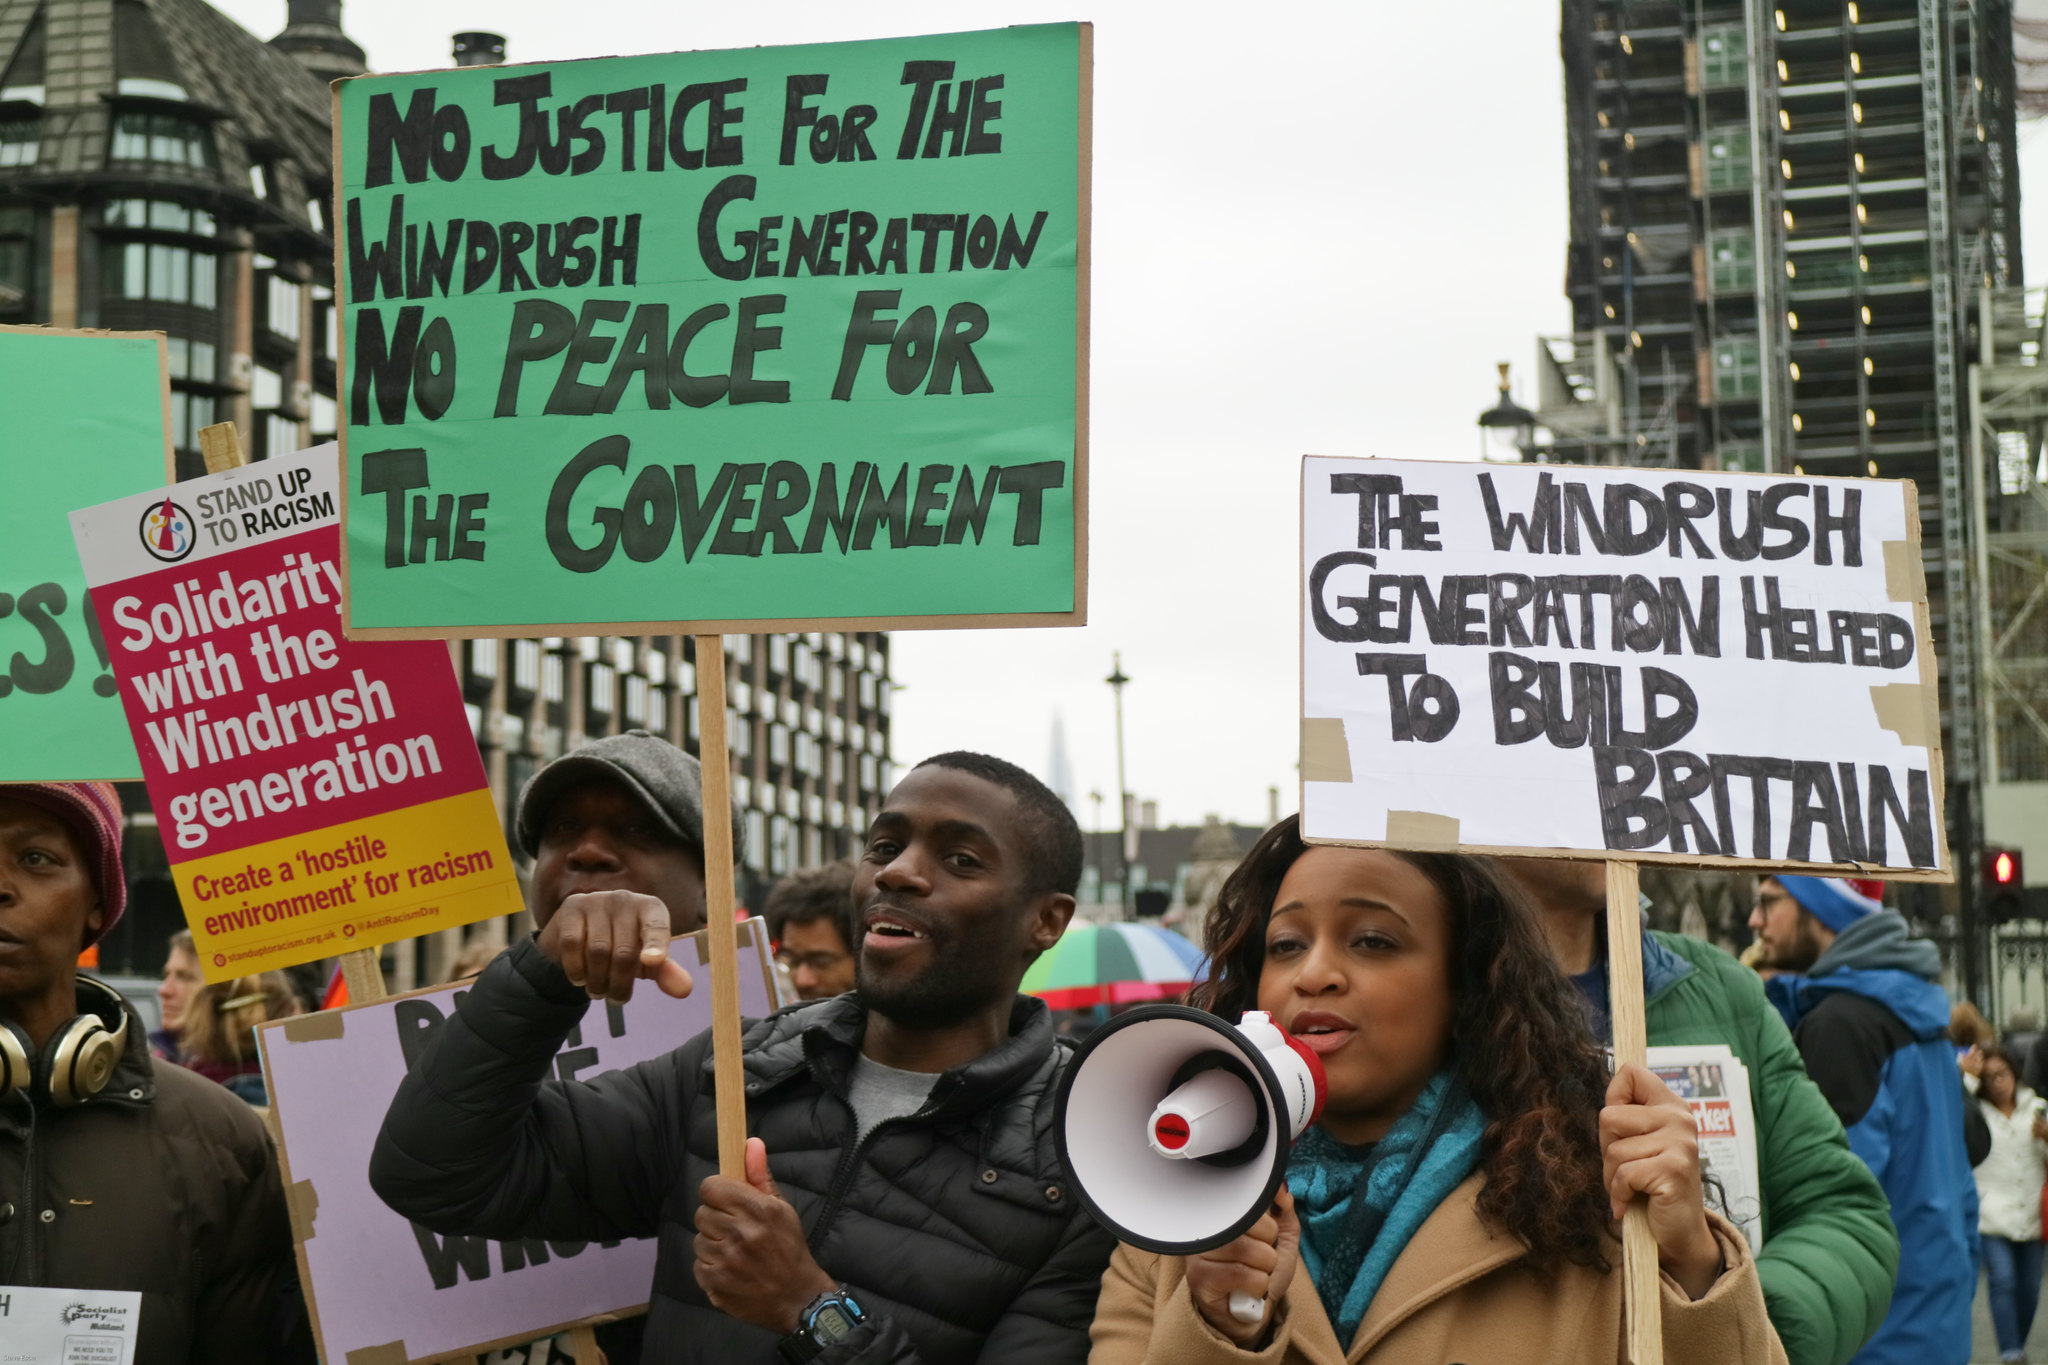 A group of protesters in London. Towards the camera is a woman and a man, both holding placards. The woman is talking into a loudhailer.